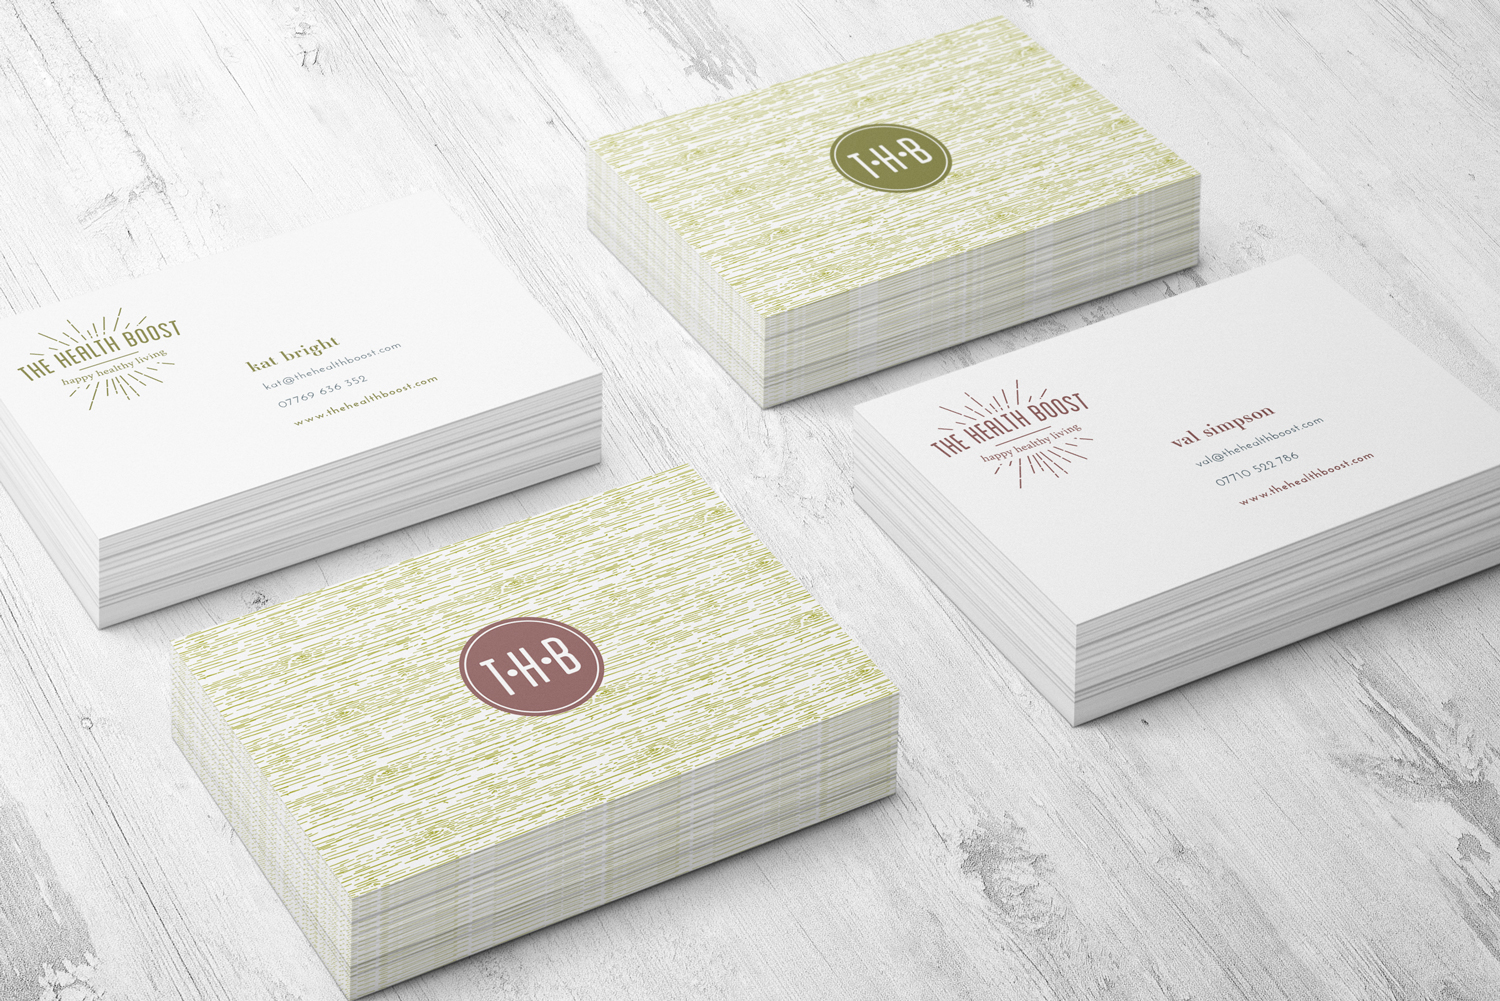 The-Health-Boost-business-cards.jpg